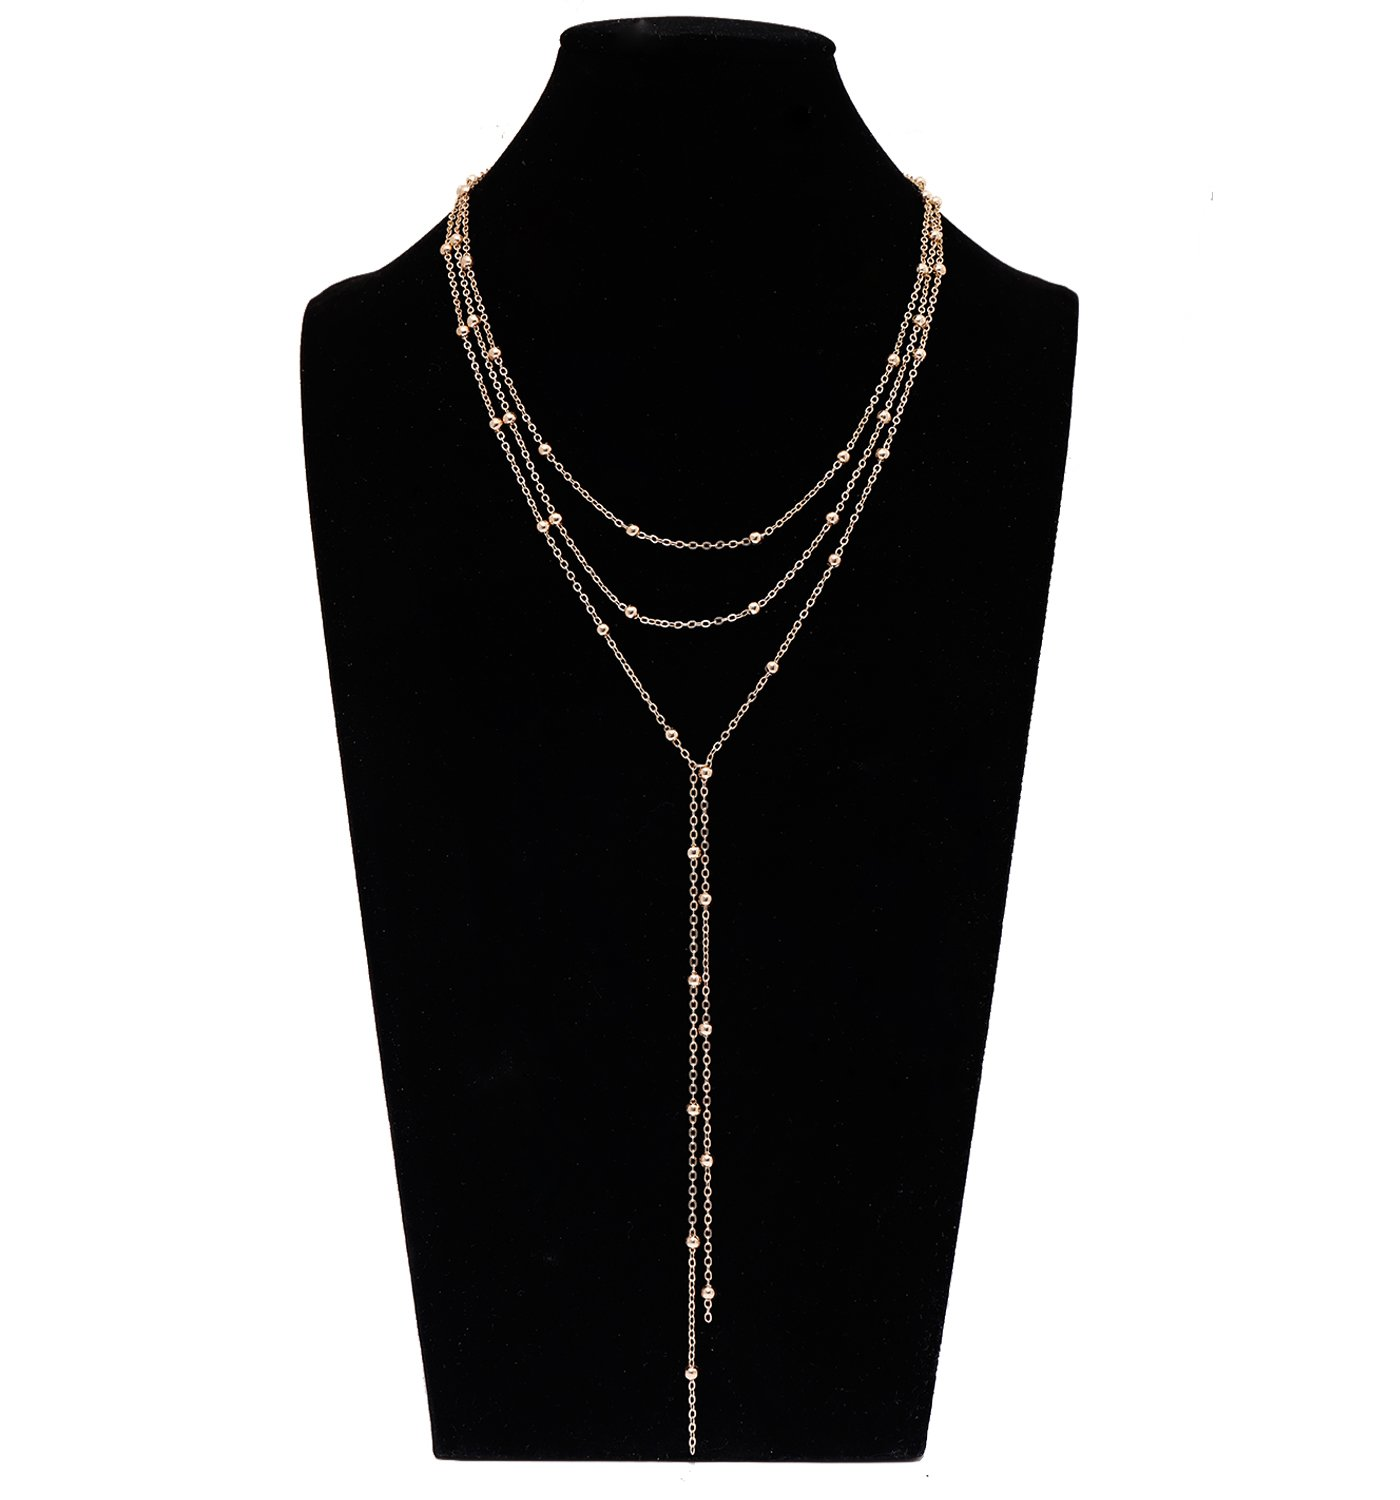 MOLOCH Layer Choker Necklace with Long Chain Pendant for women girls Handmade y necklace Charm chain jewelry necklace (gold)